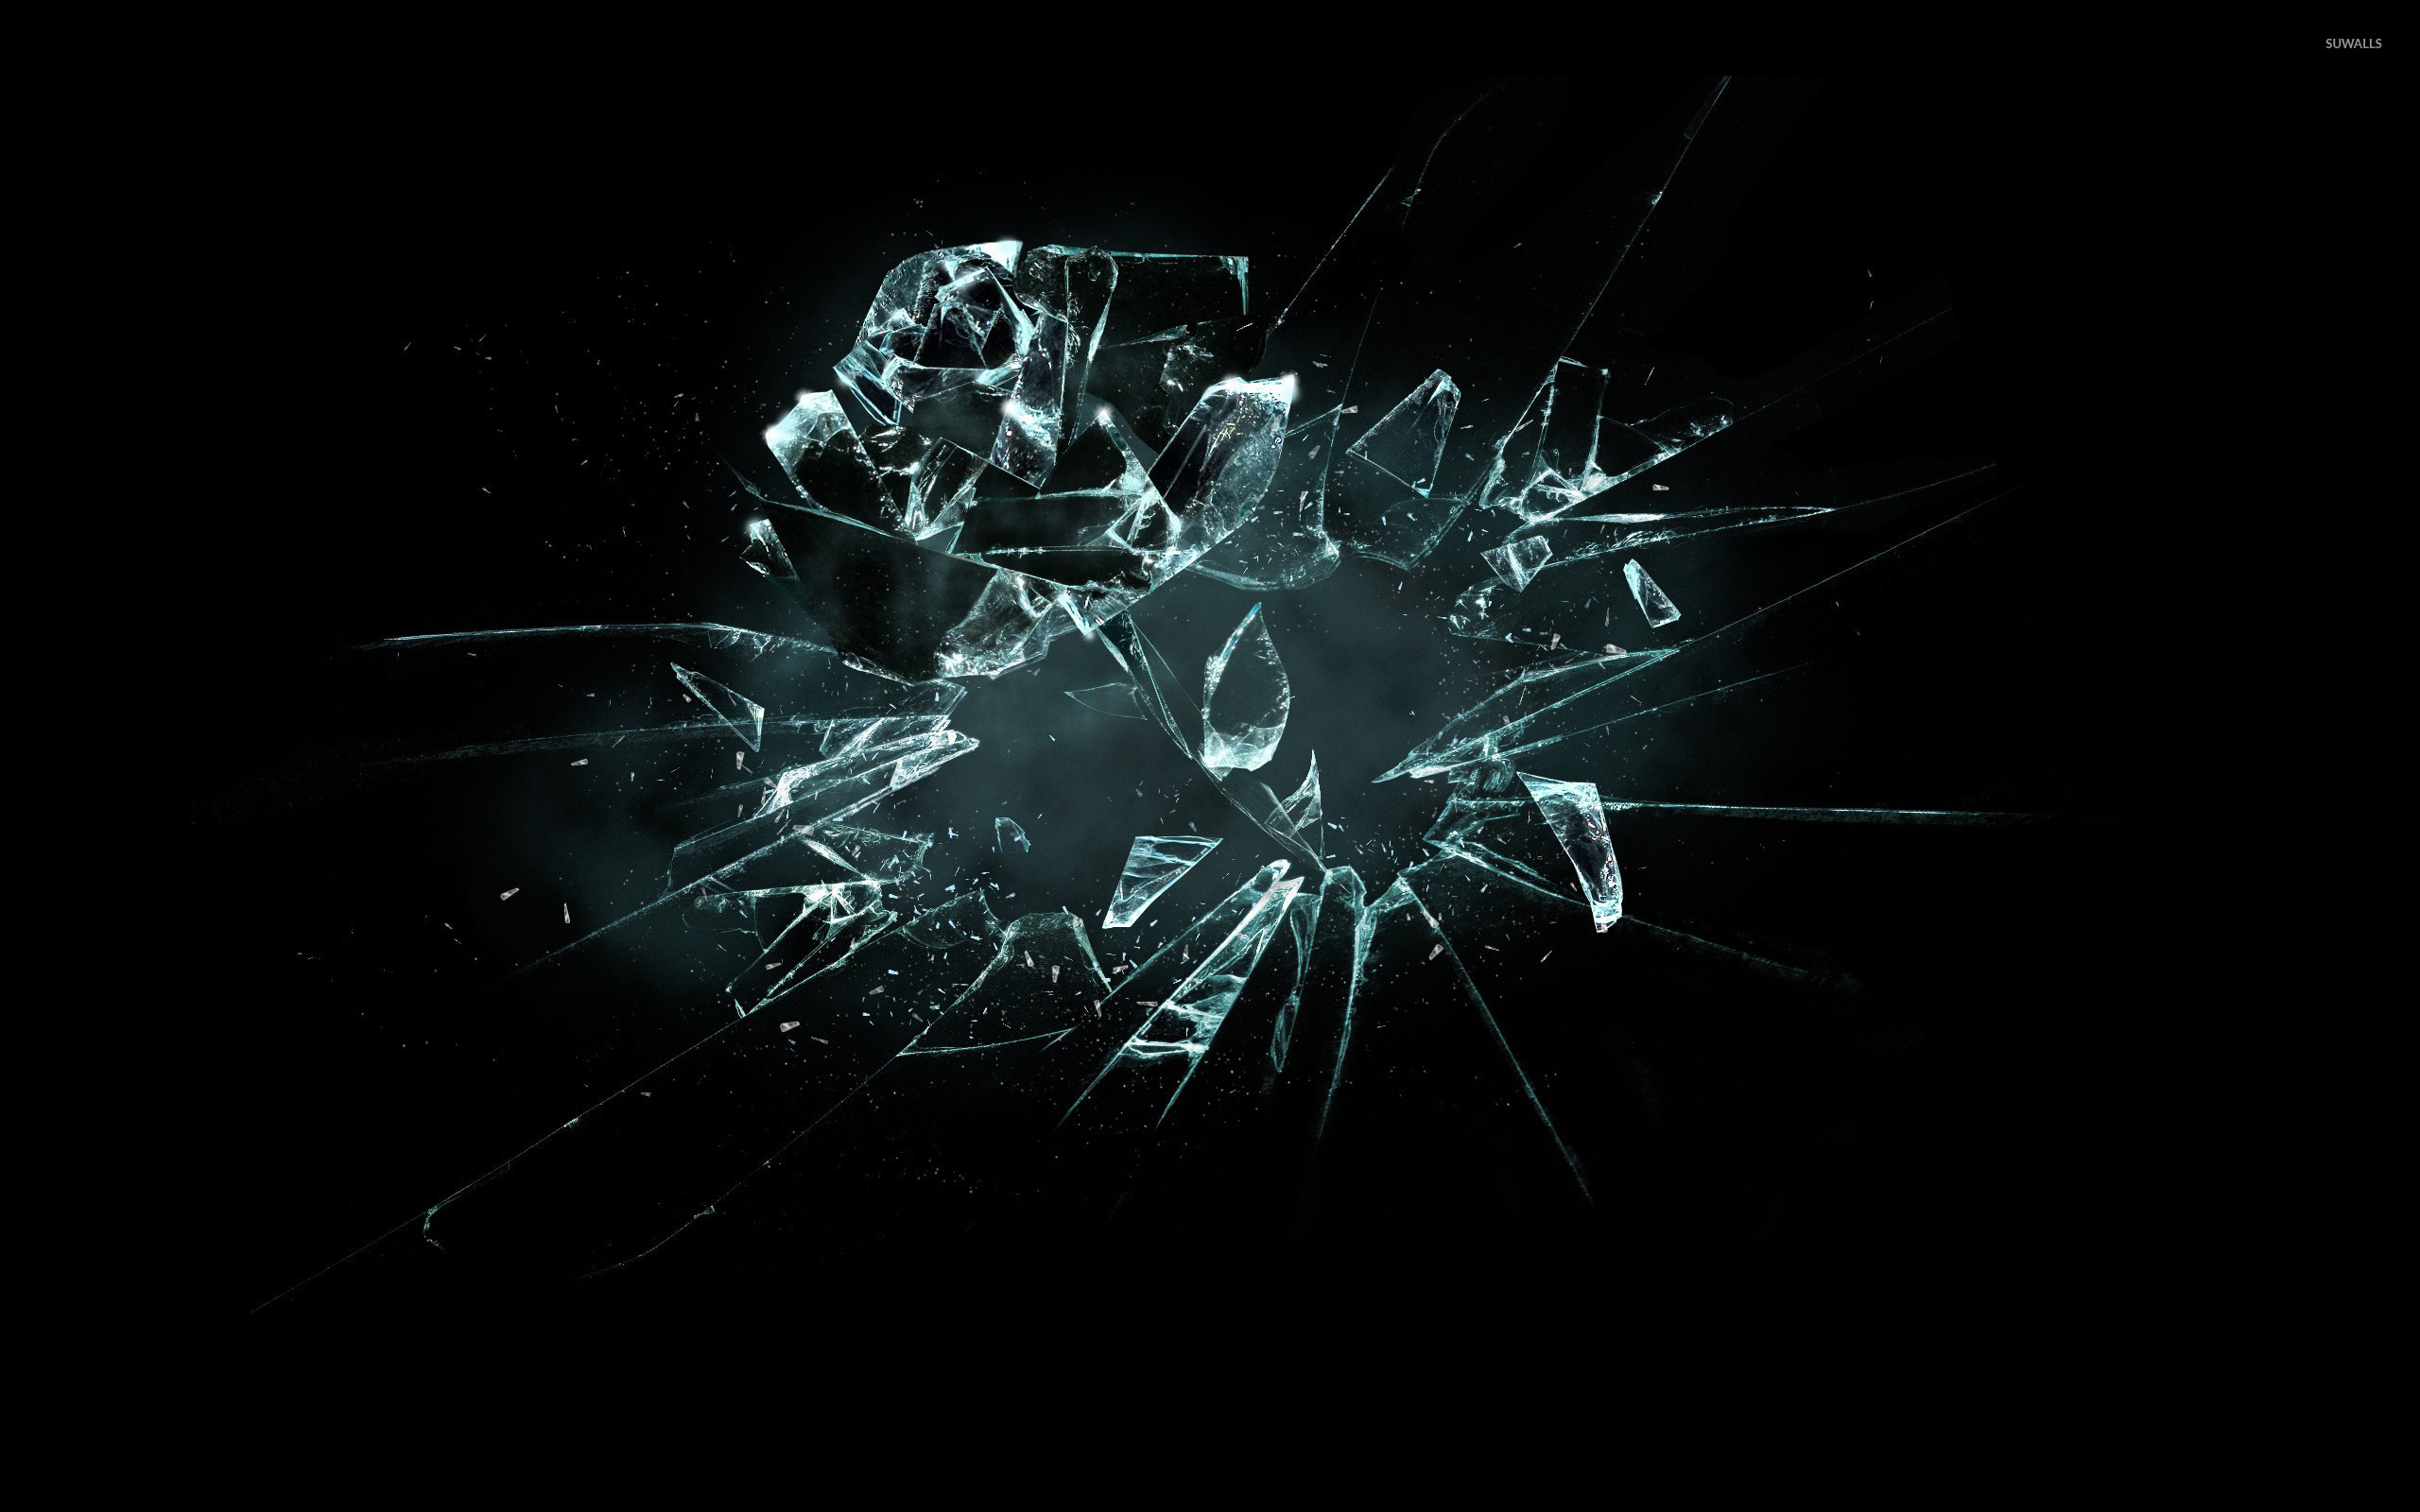 wallpaper xpx full view and download car glass broken wallpaper with 2560x1600